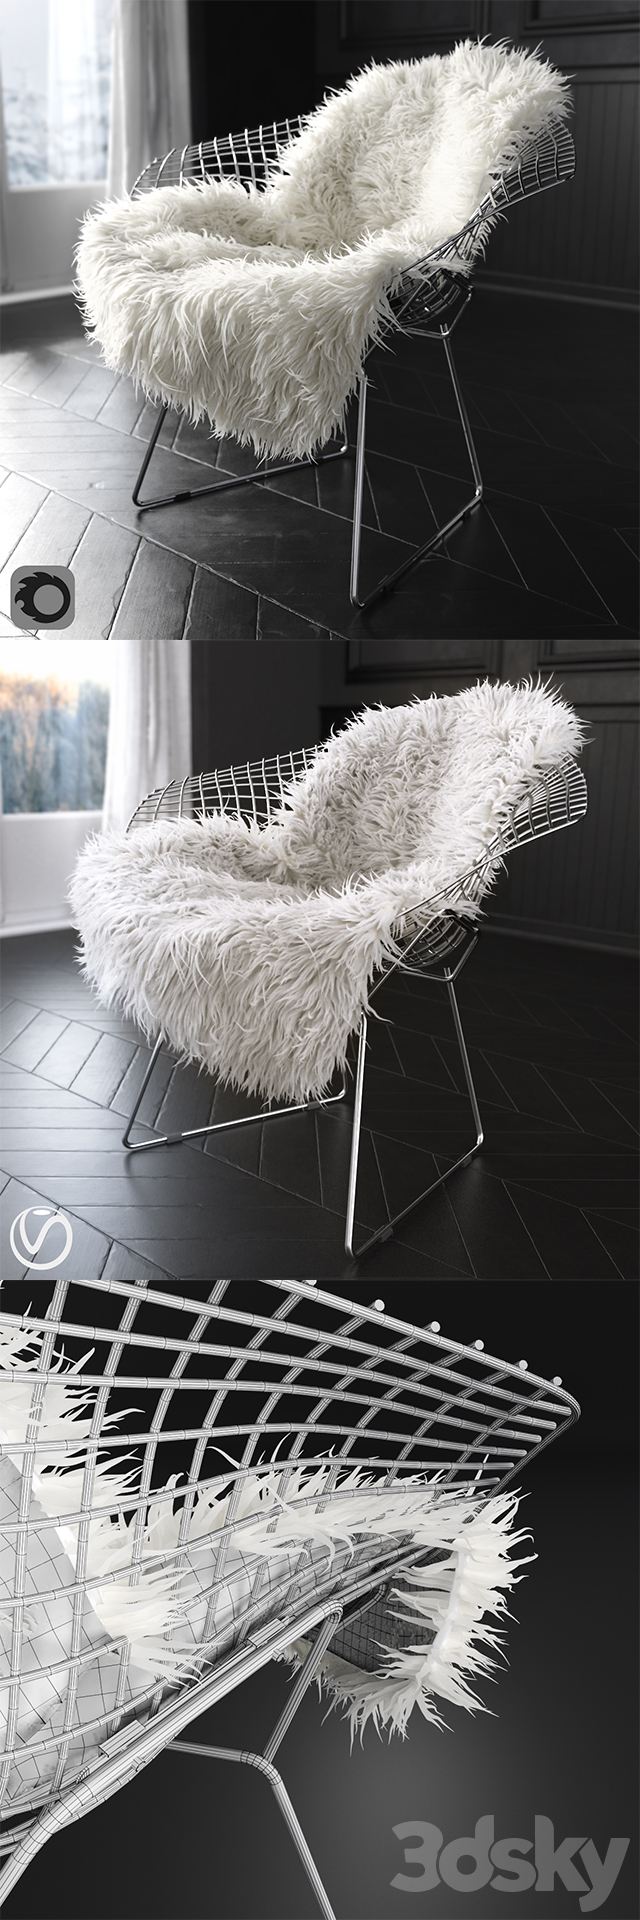 Sheepskin on Bertoia Diamond chair by Knoll